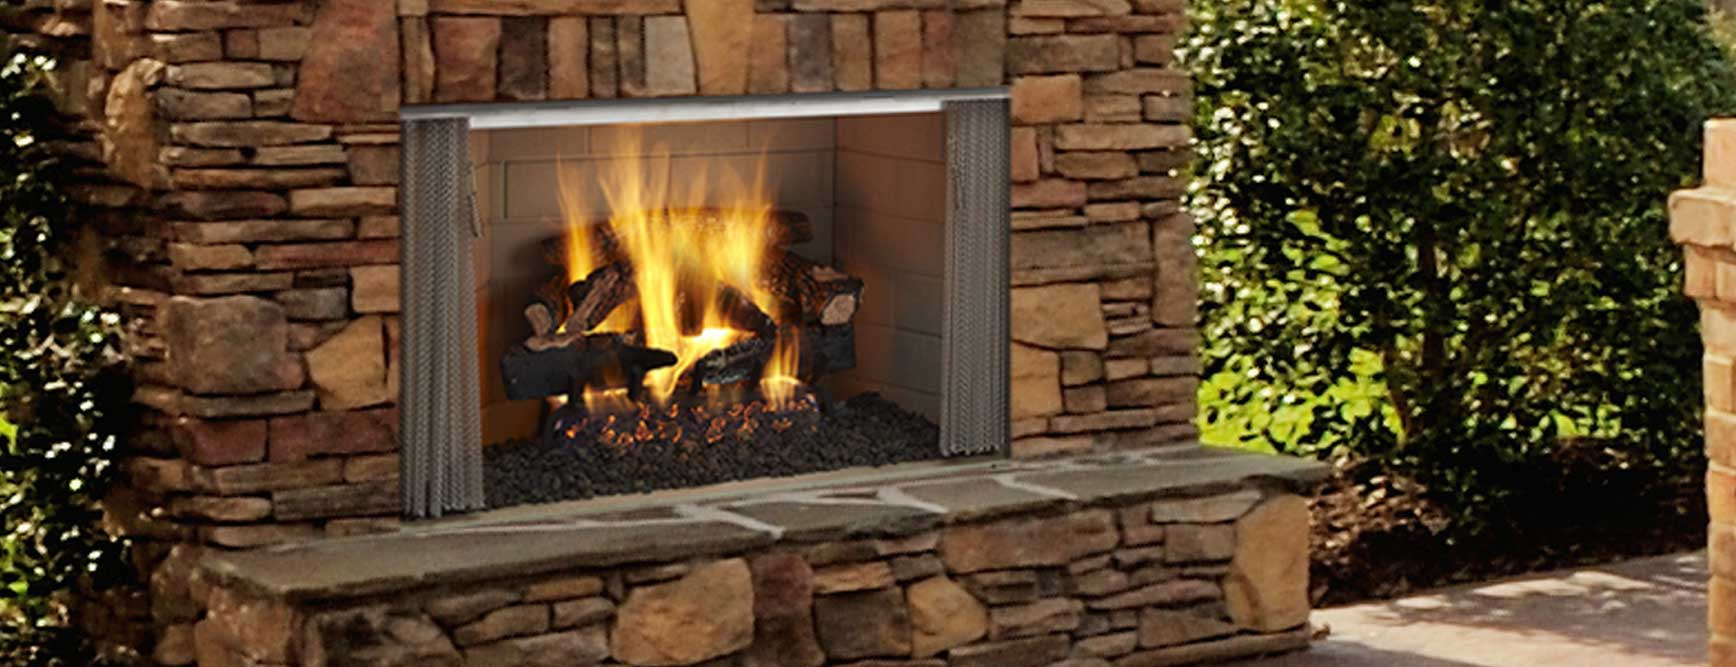 Of Outdoor Fireplaces Outdoor Fireplaces Louisville Ky Olde Towne Chimney